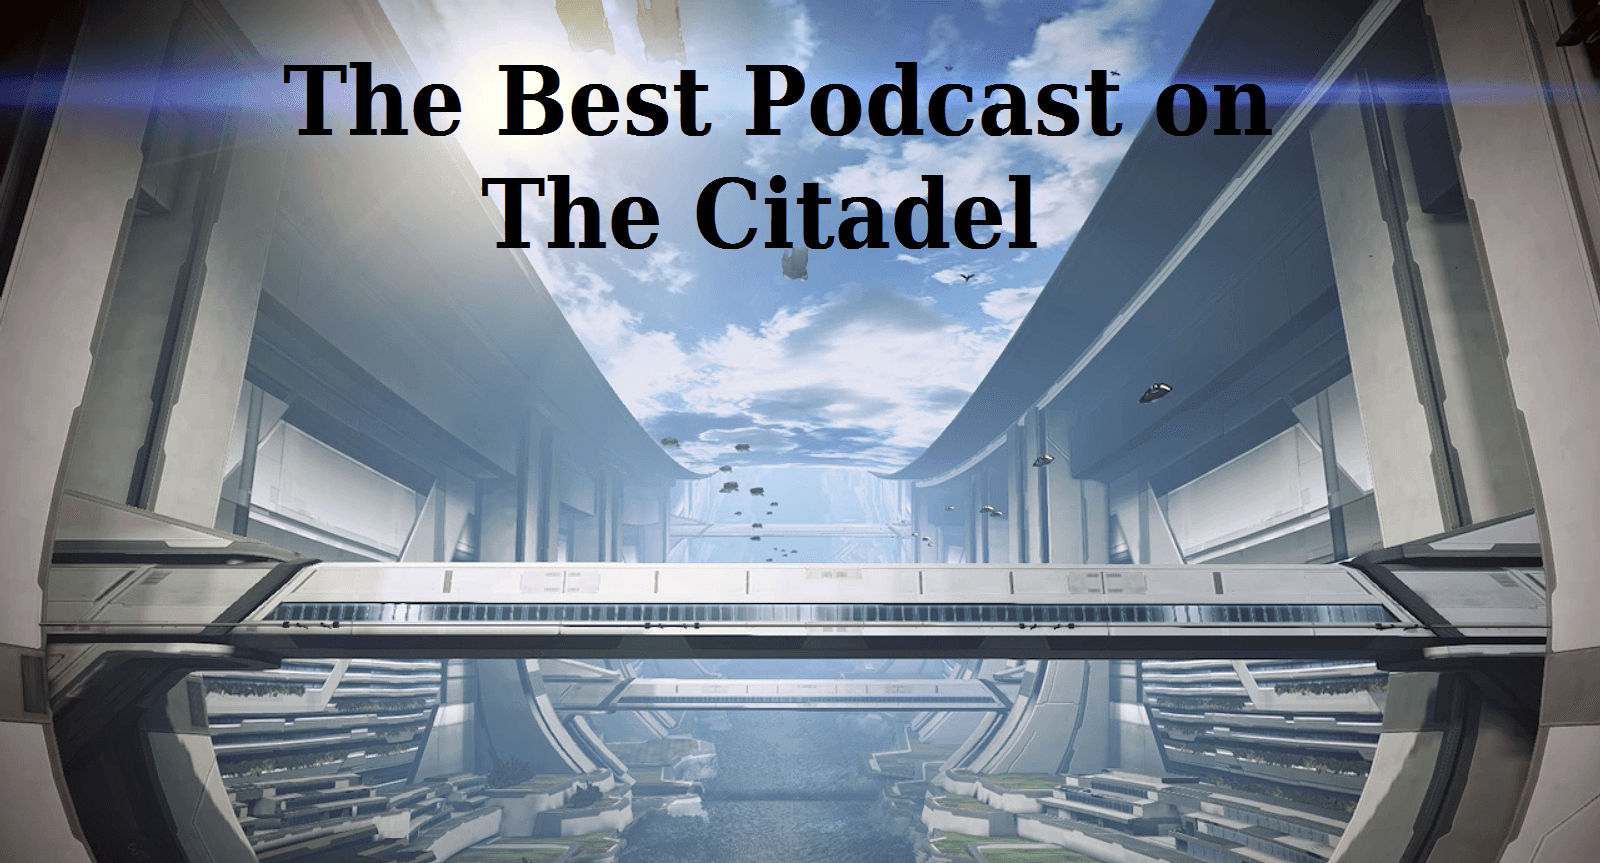 The Best Podcast on the Citadel, Episode 15